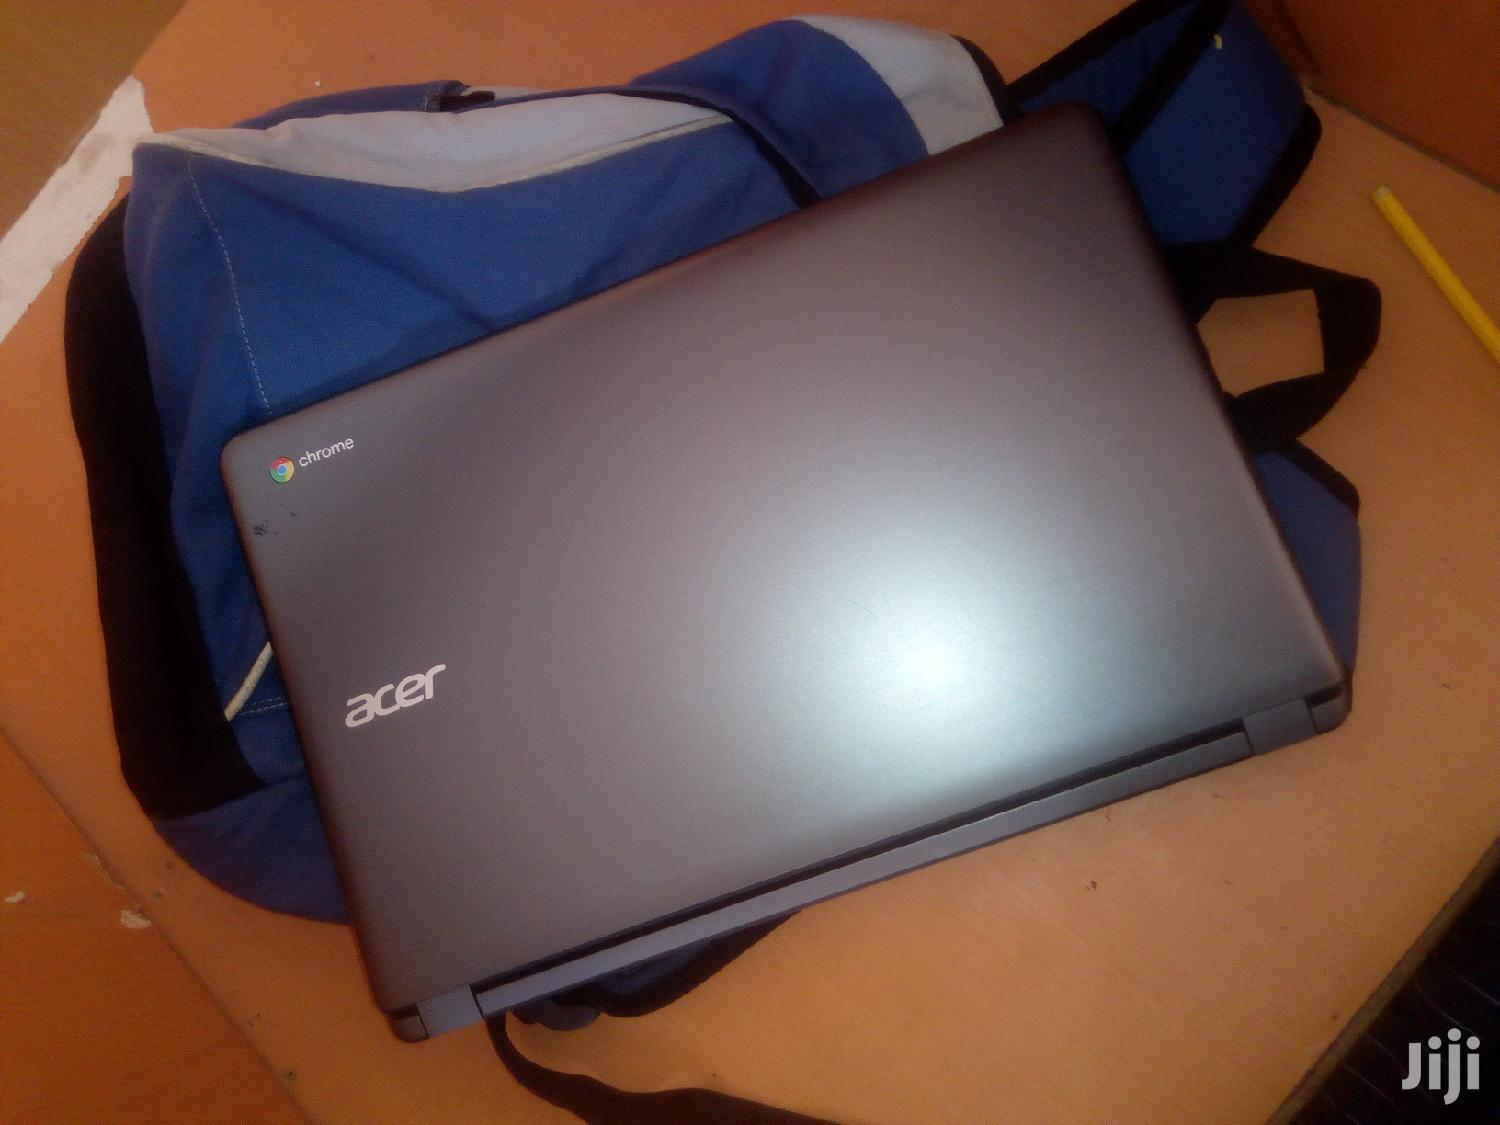 Laptop Acer Chromebook 15 4GB Intel Core I5 SSD 16 GB | Laptops & Computers for sale in Adenta Municipal, Greater Accra, Ghana